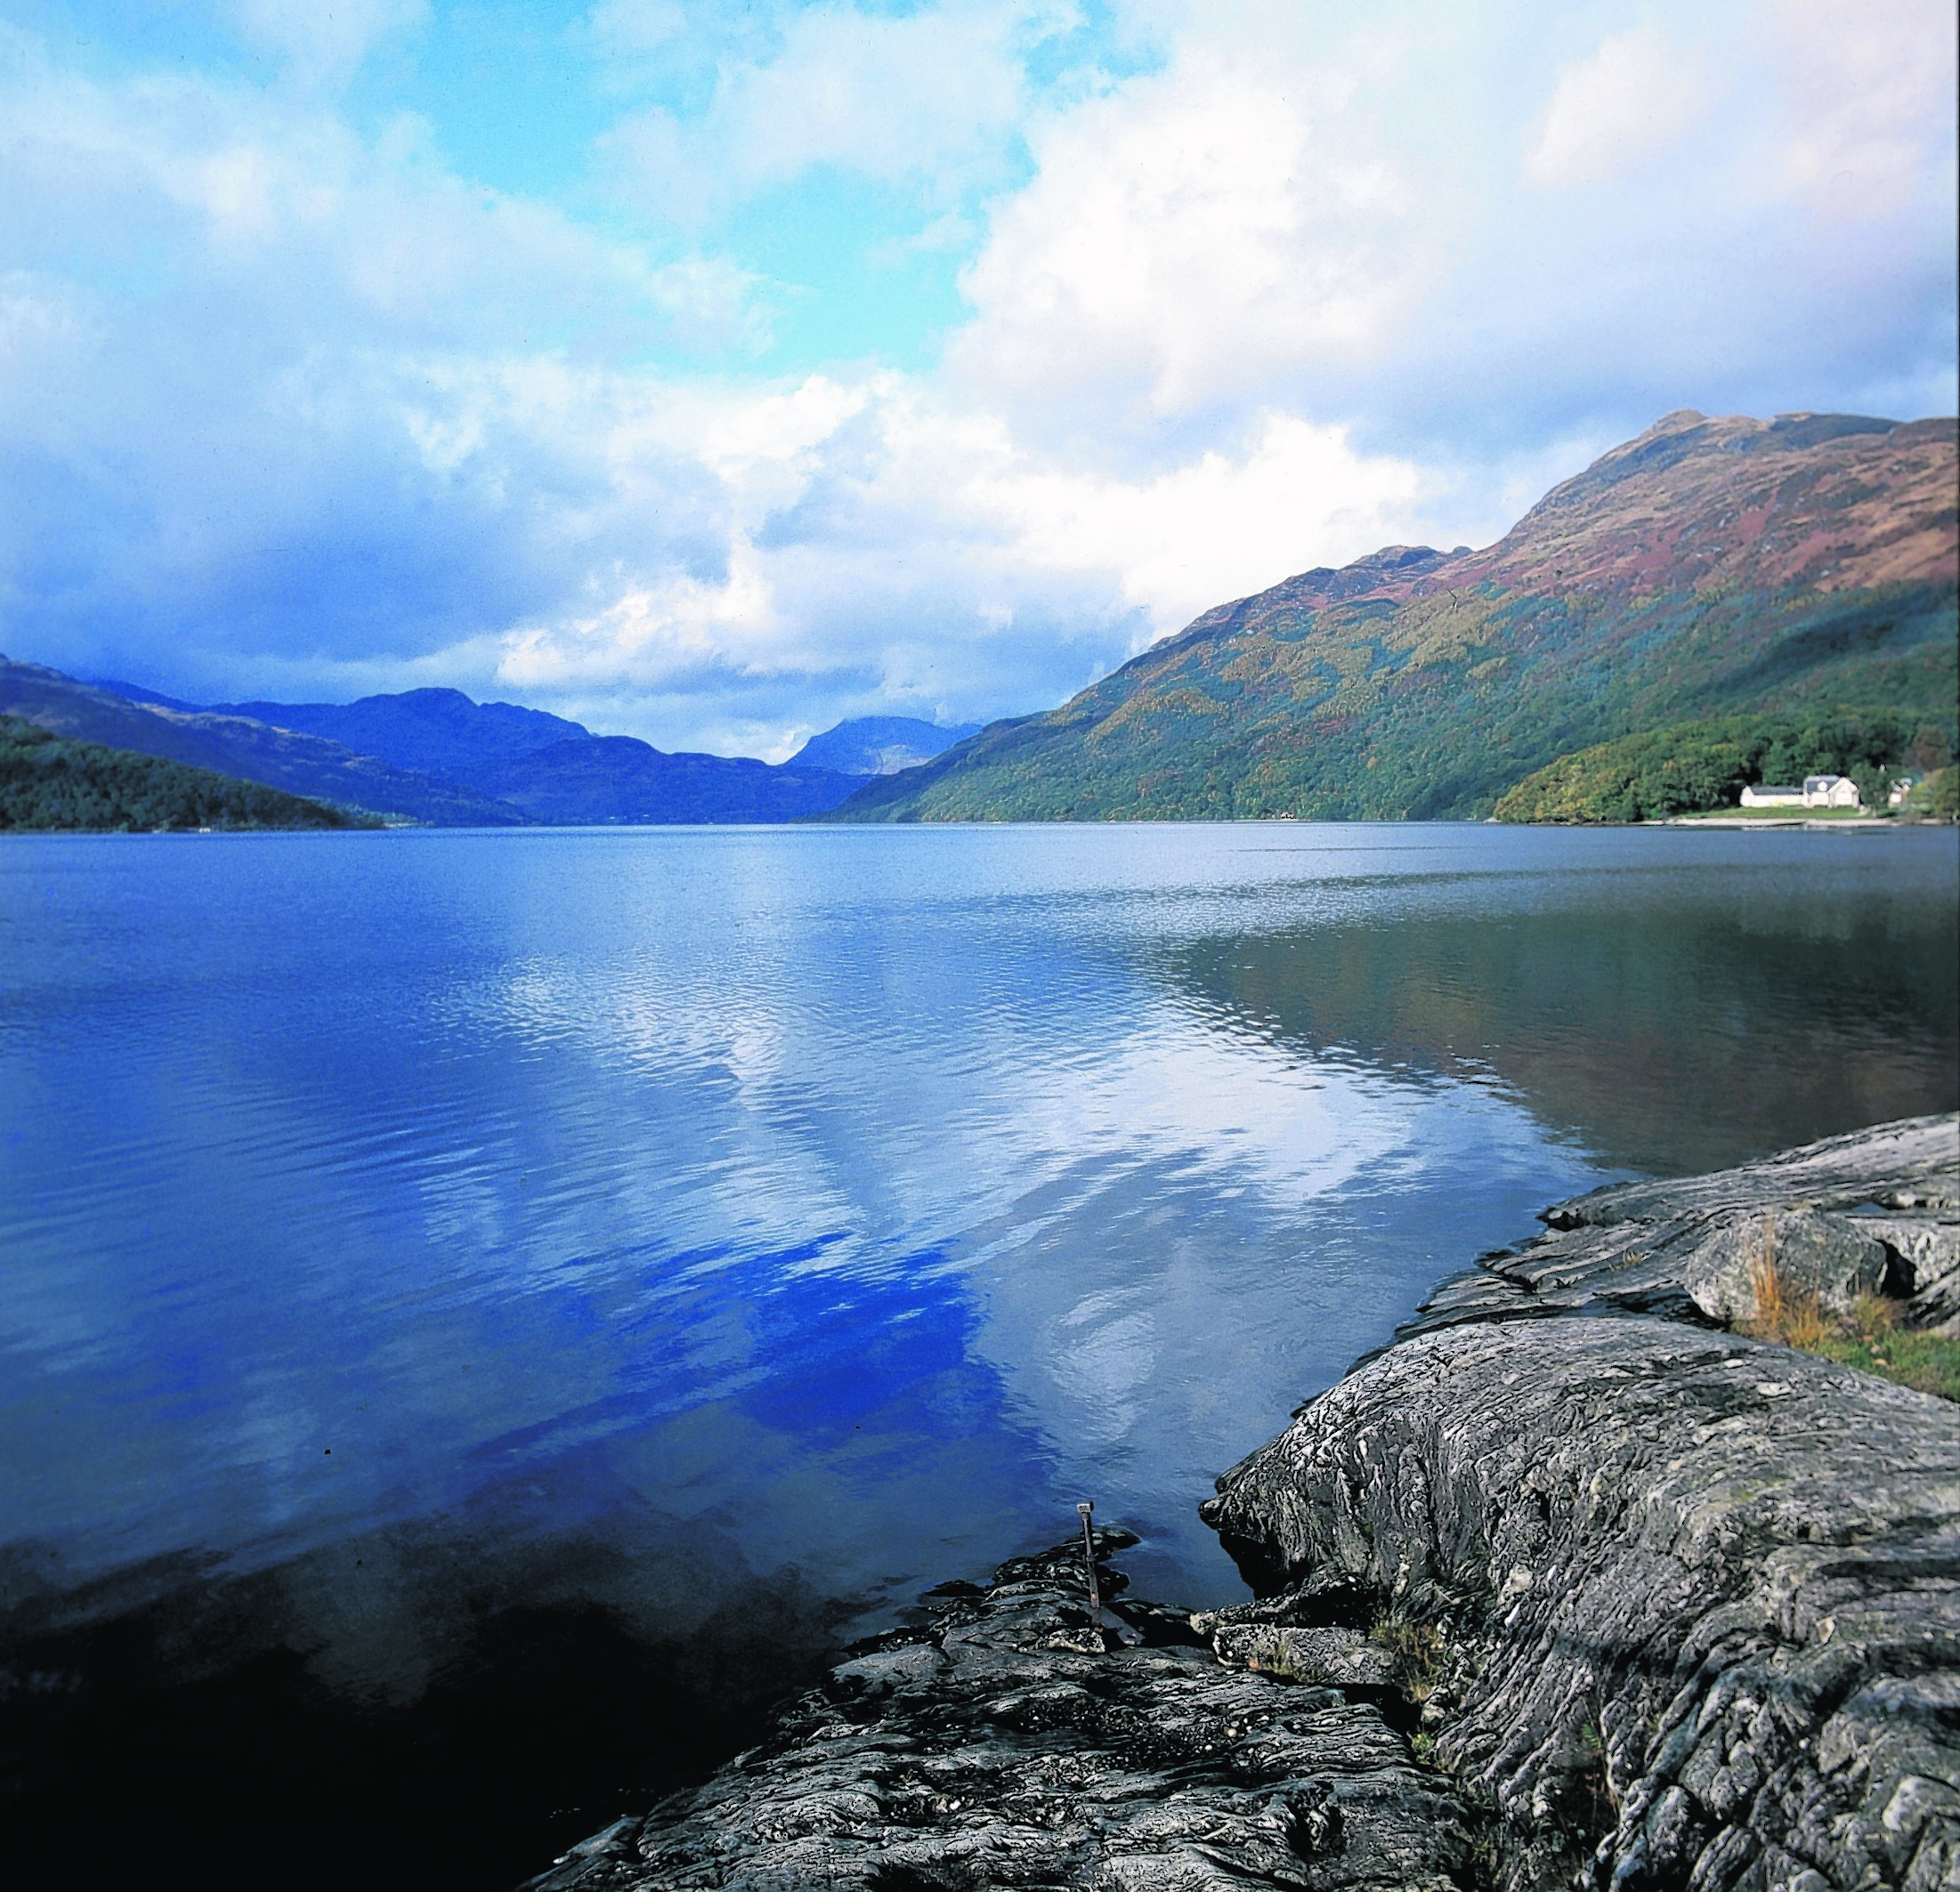 Looking along the banks of Loch Lomond. Photo: Scottish Viewpoint/VisitScotland